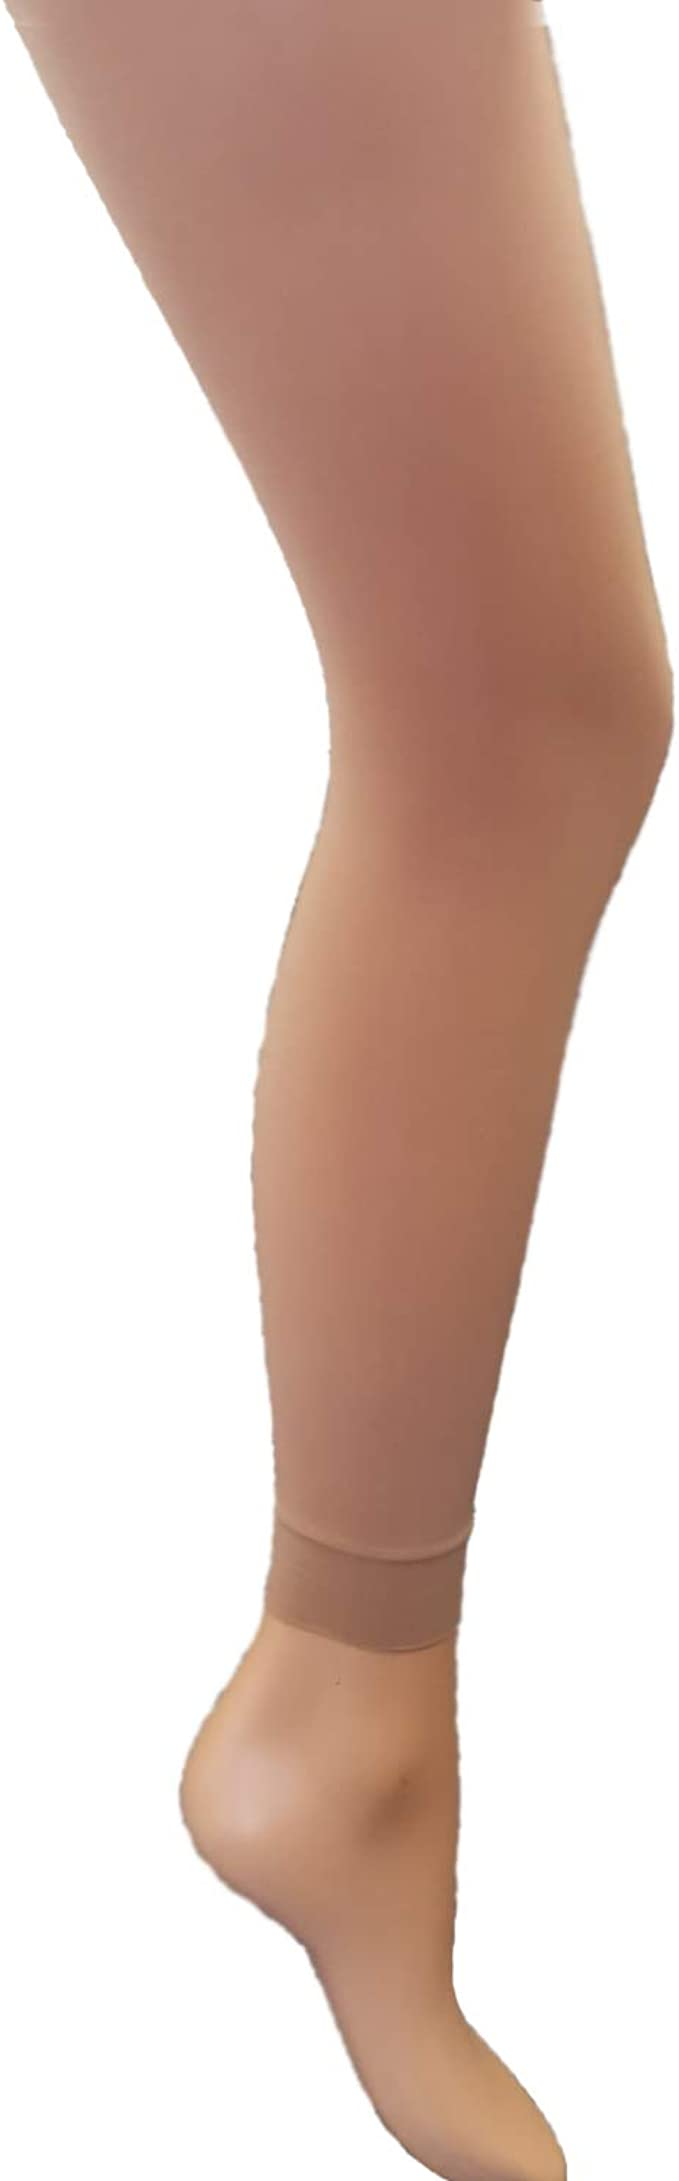 black Silky convertable dance tights childrens and adults pink tan